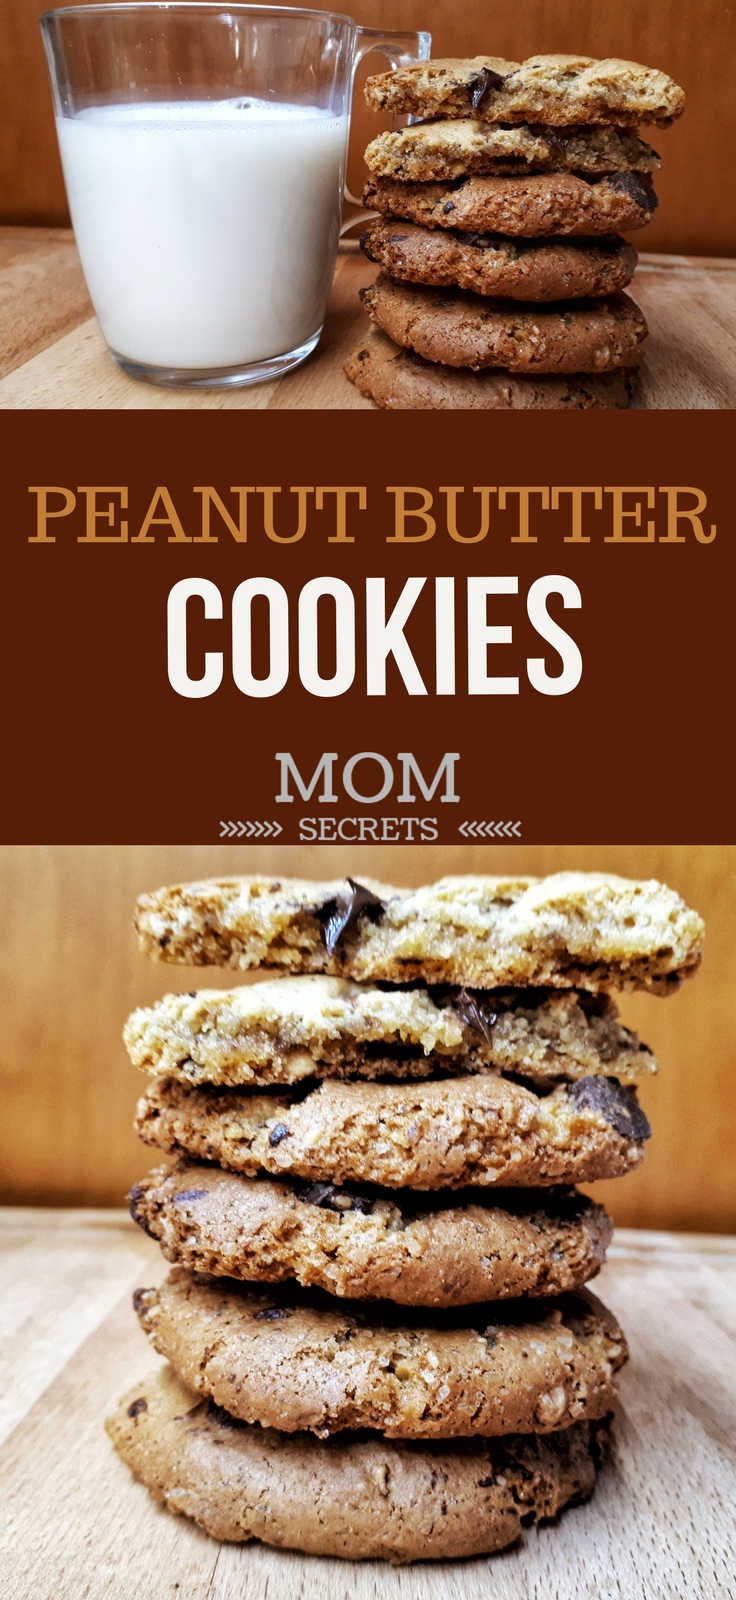 This week I have made some easy, crispy and chewy recipe of peanut butter cookies with chocolate chips. This time I use dark and milk chocolate. These cookies are extra soft and incredibly tasty!